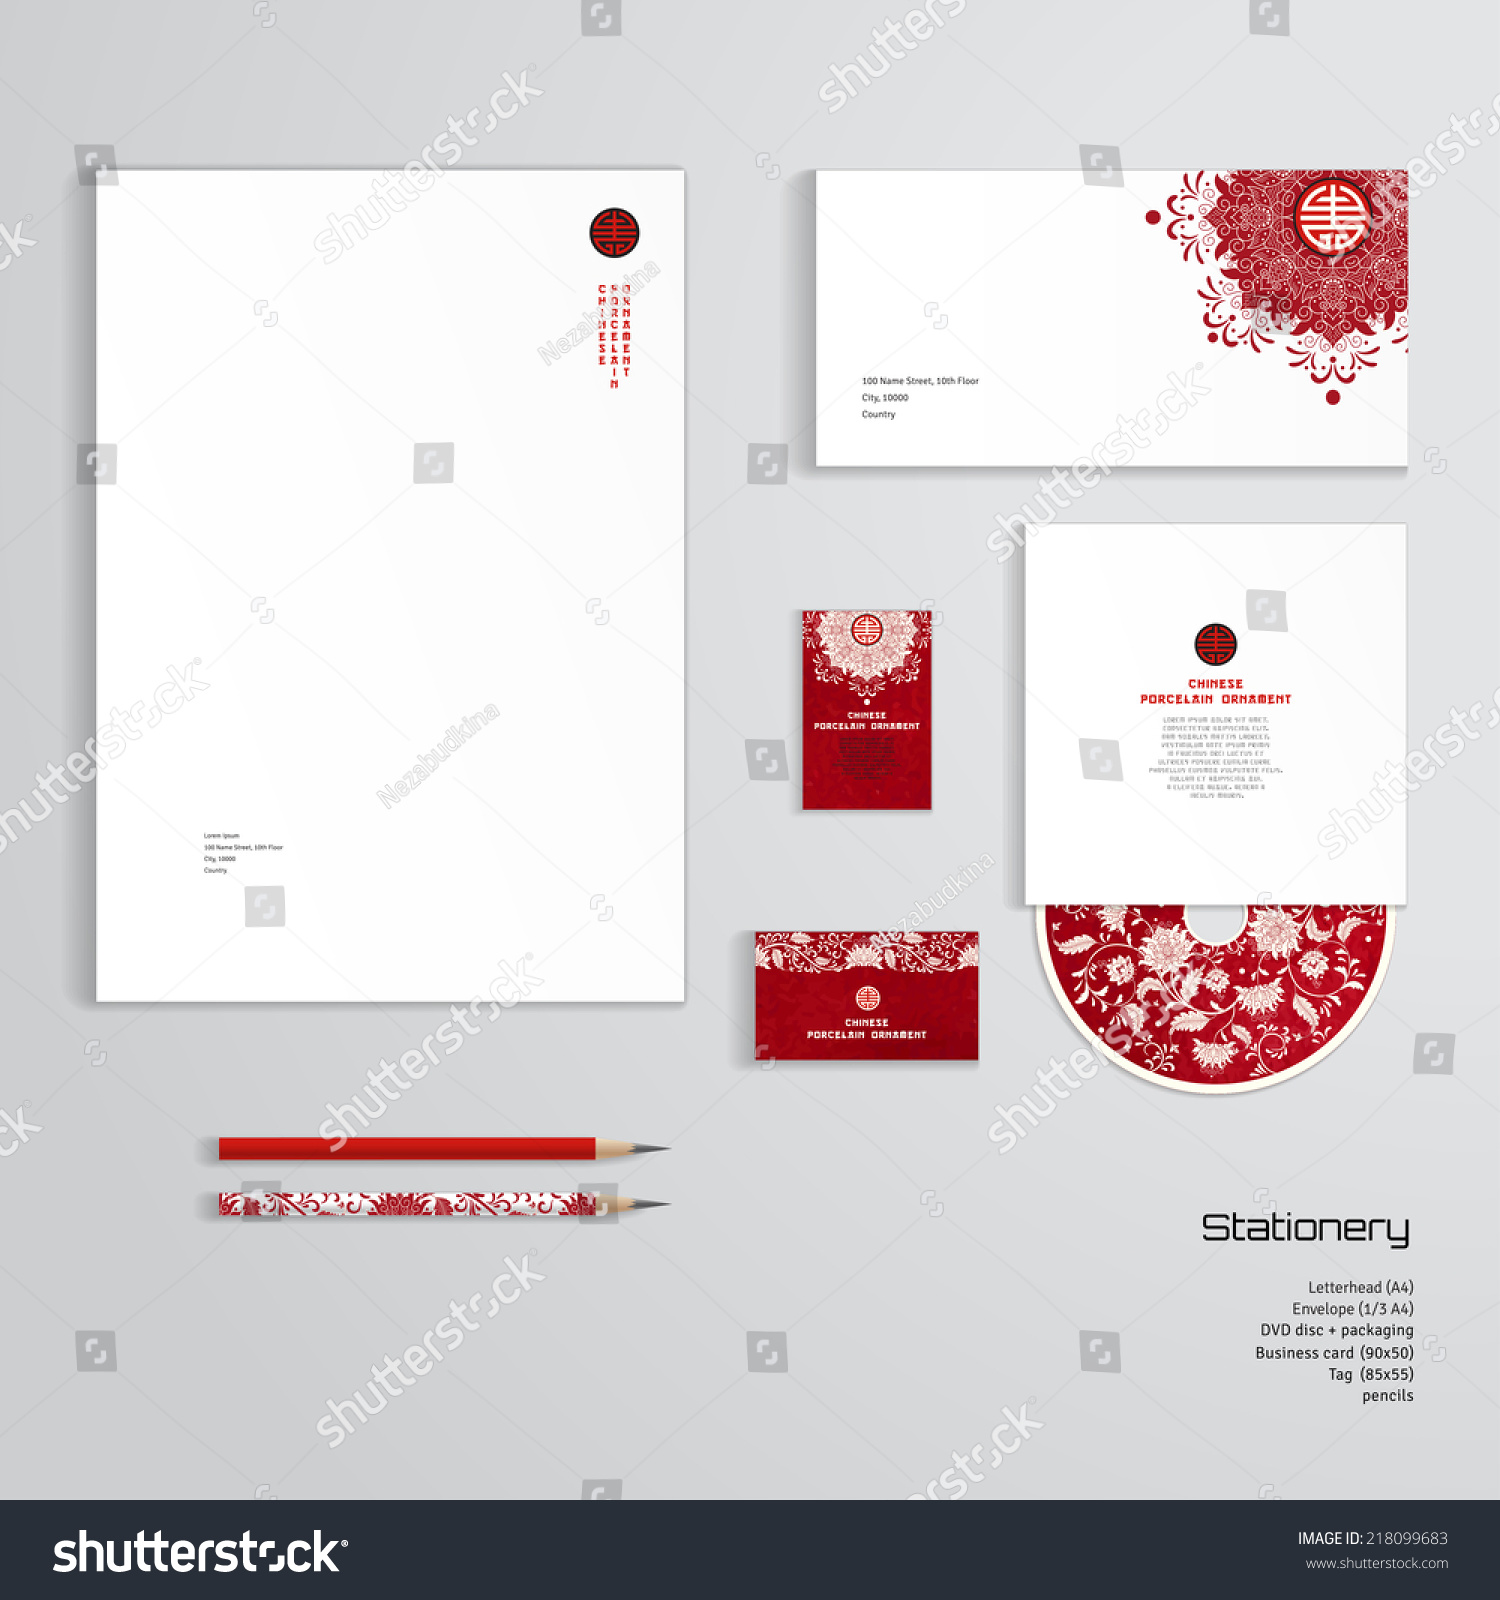 Business card envelope template gidiyedformapolitica business card envelope template cheaphphosting Image collections